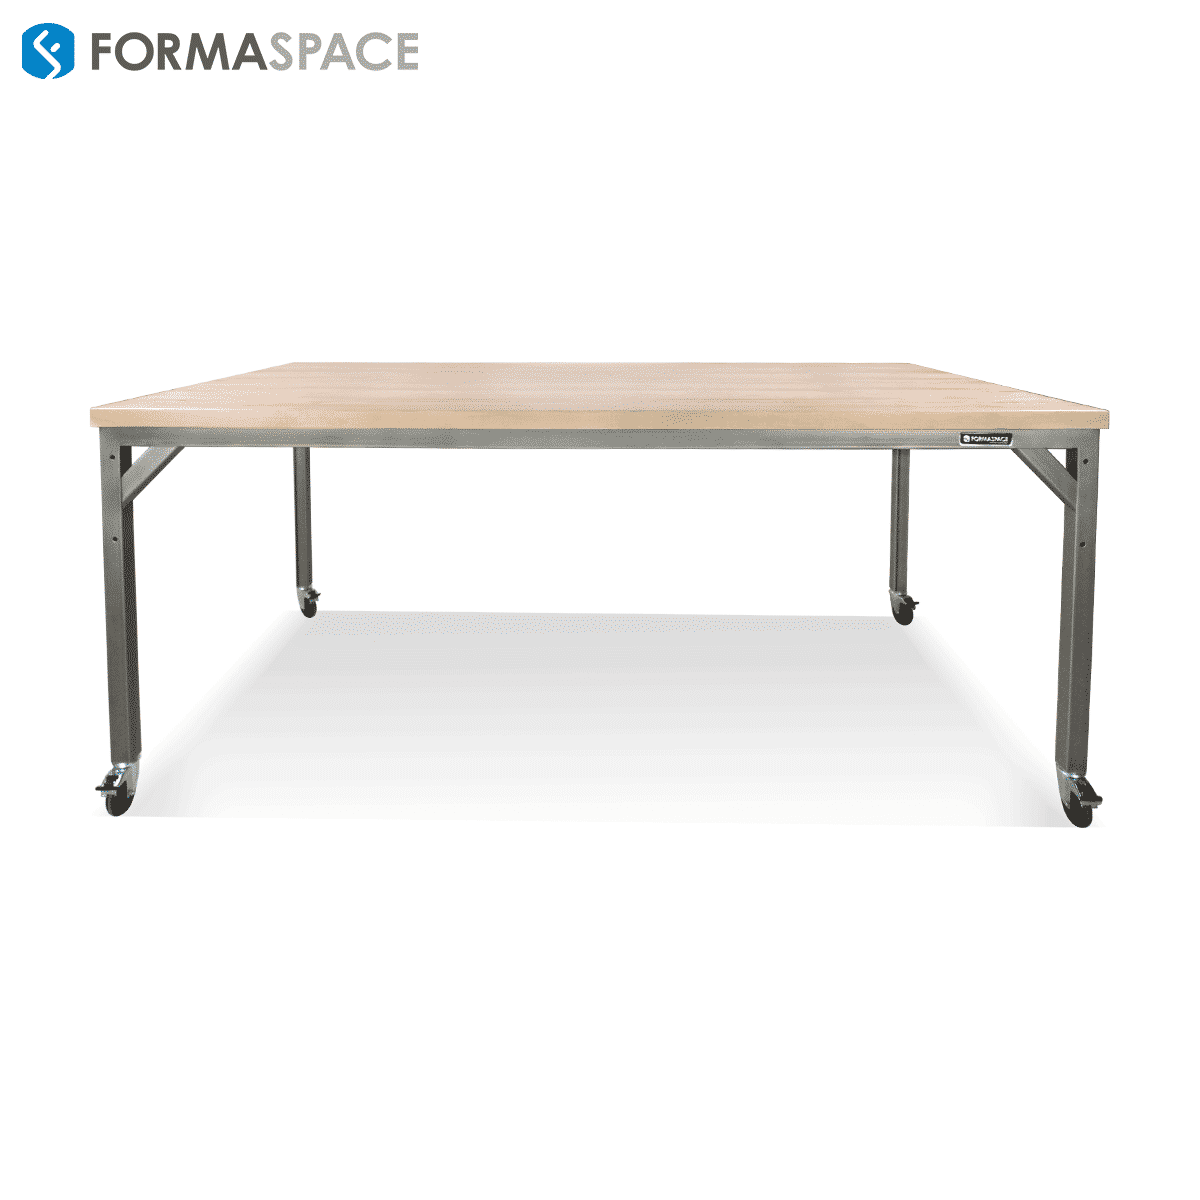 bar height industrial table on wheels